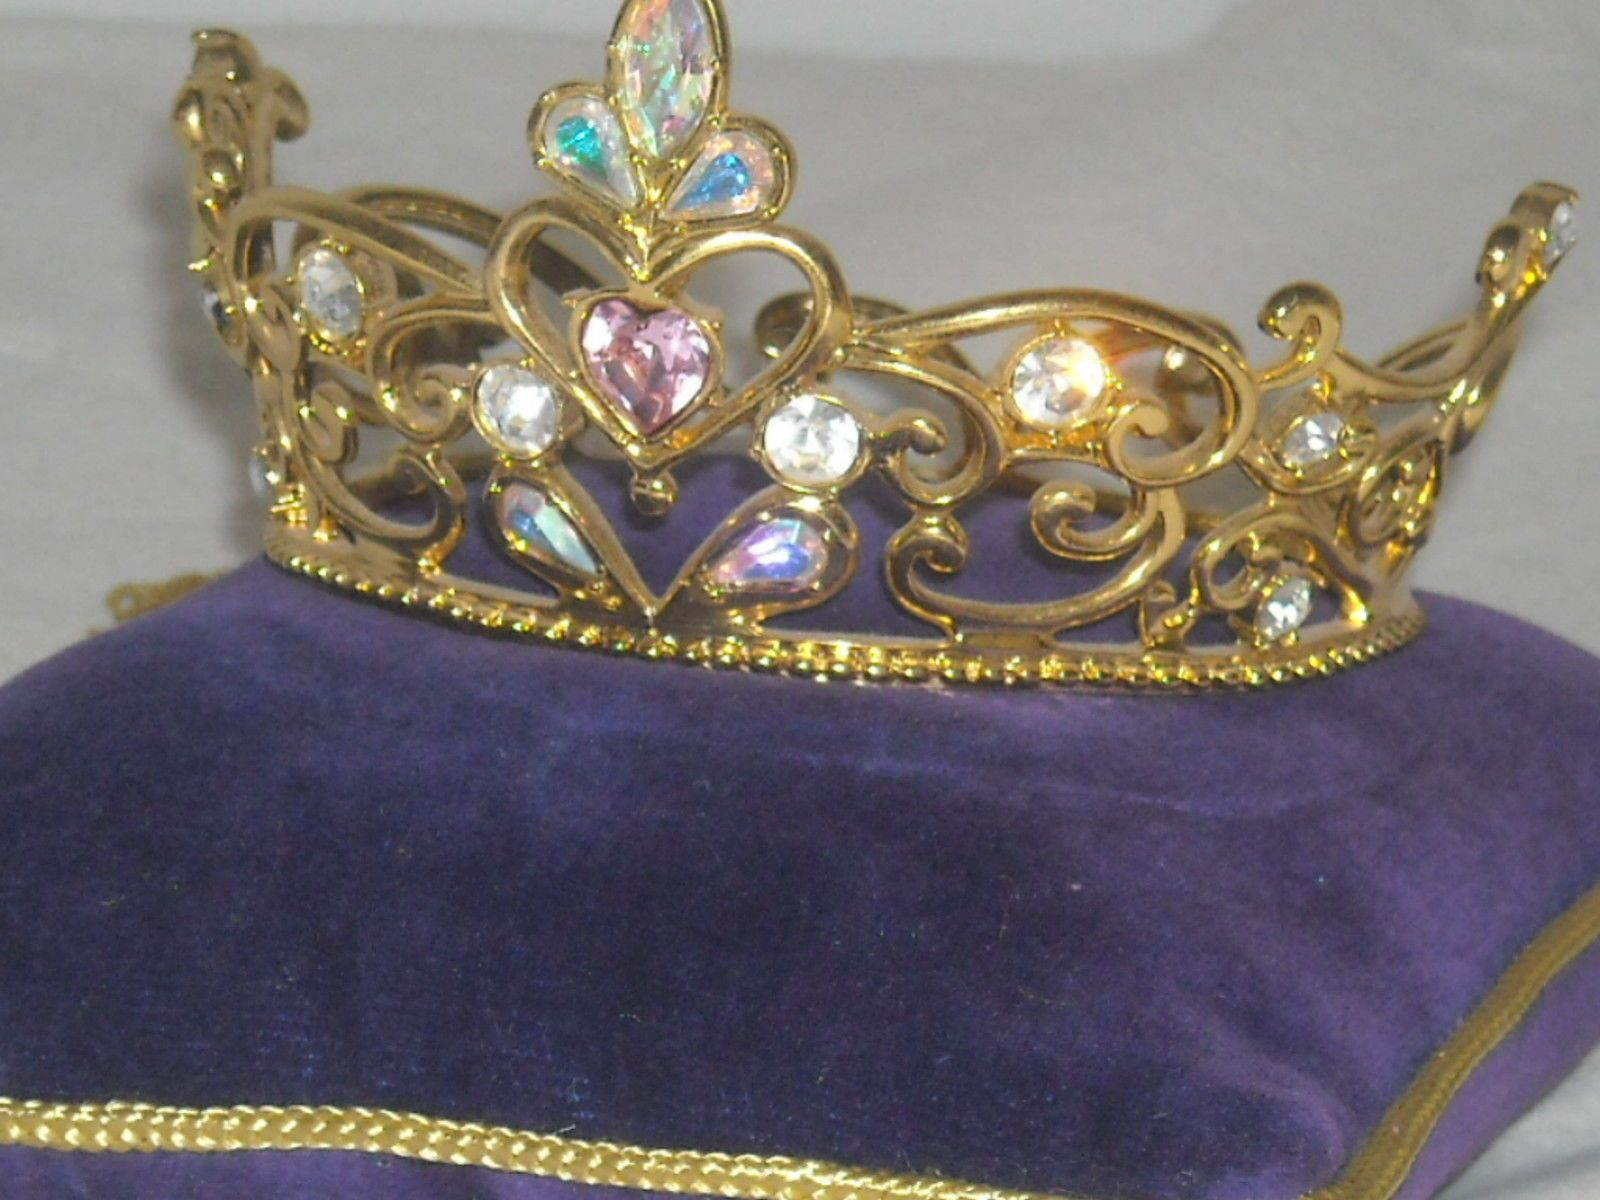 Franklin Mint Cinderella Tiara Crown with Pillow | eBay